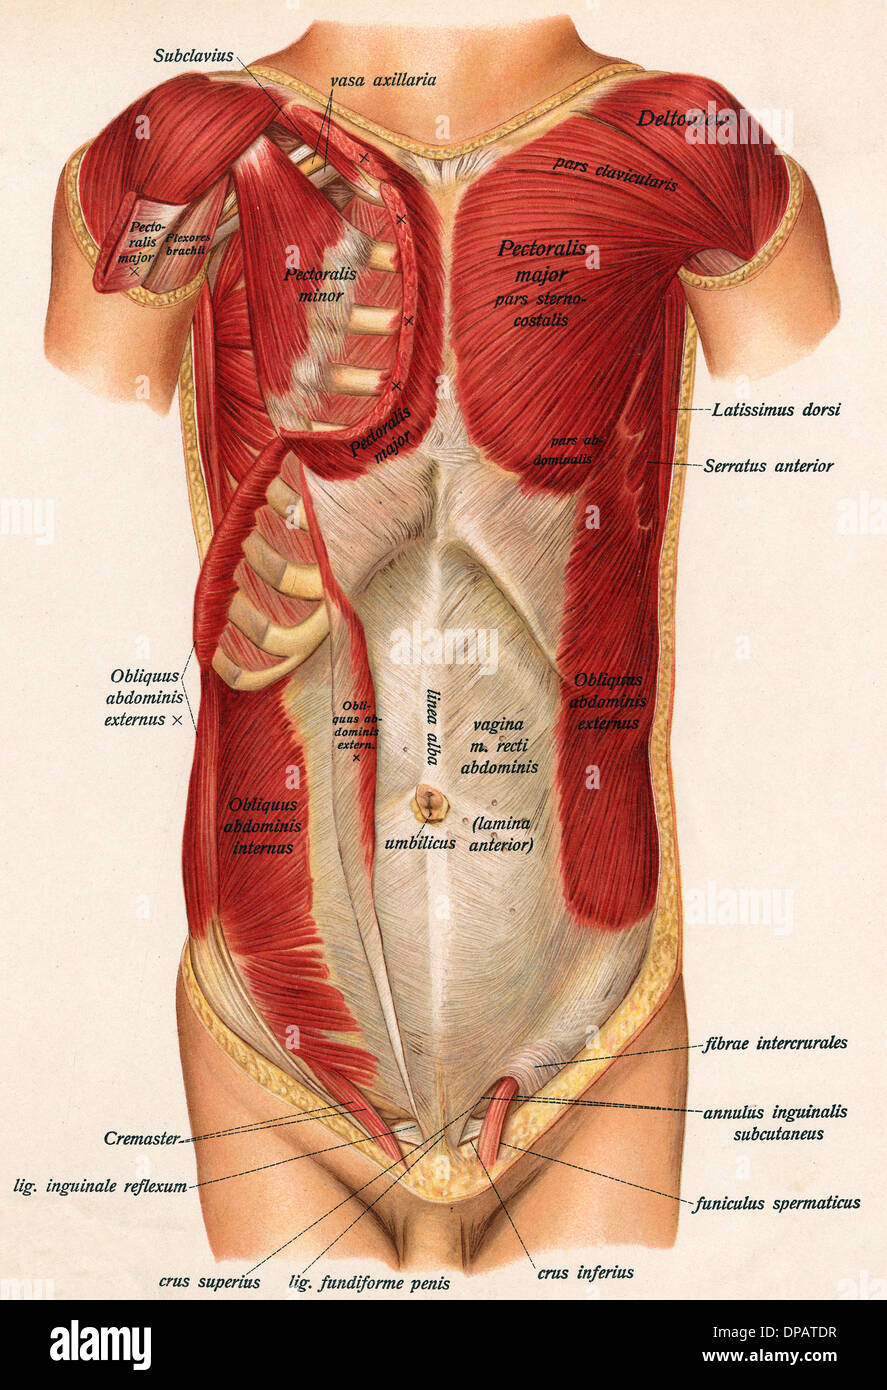 Muscles Front Of Body Stock Photo 65392259 Alamy In The Diagram Tag Full Human